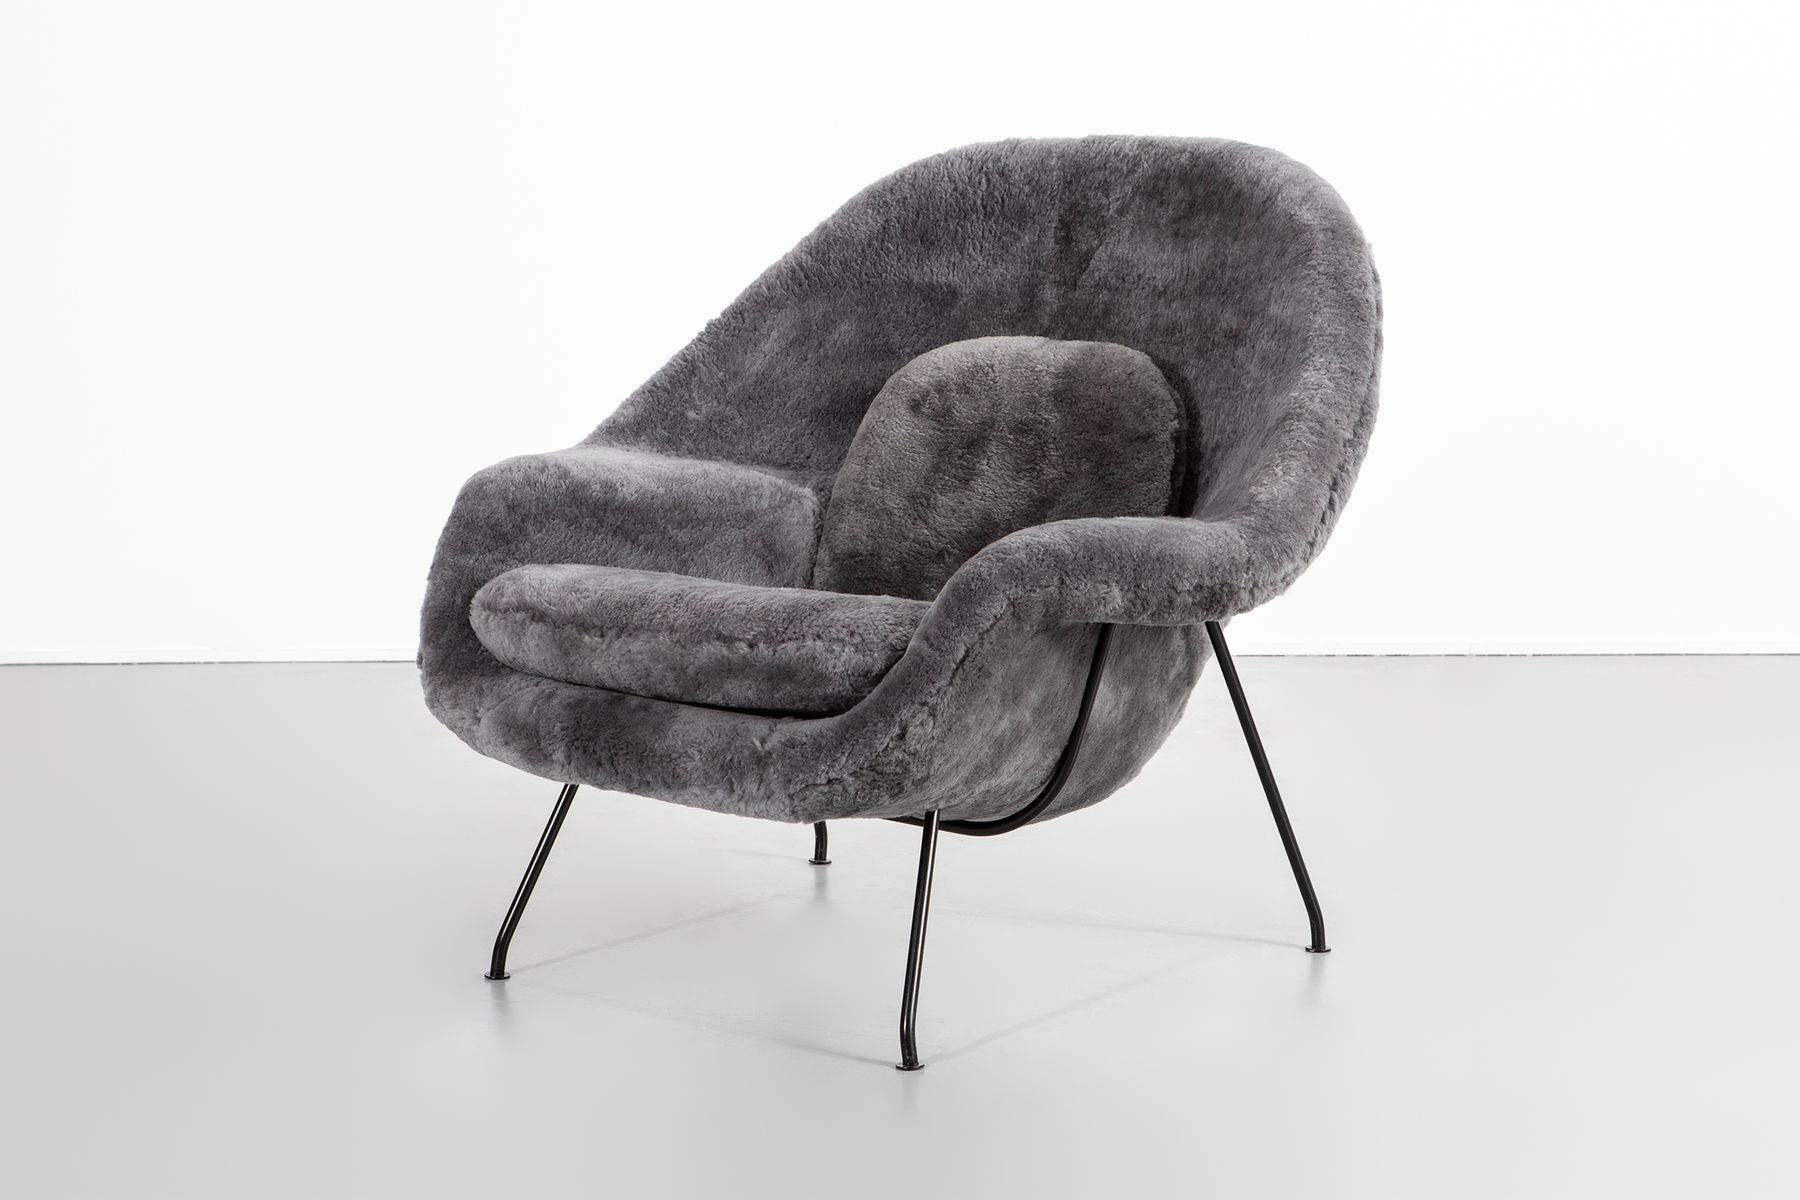 Vintage Womb Chairs By Eero Saarinen For Knoll, Set Of